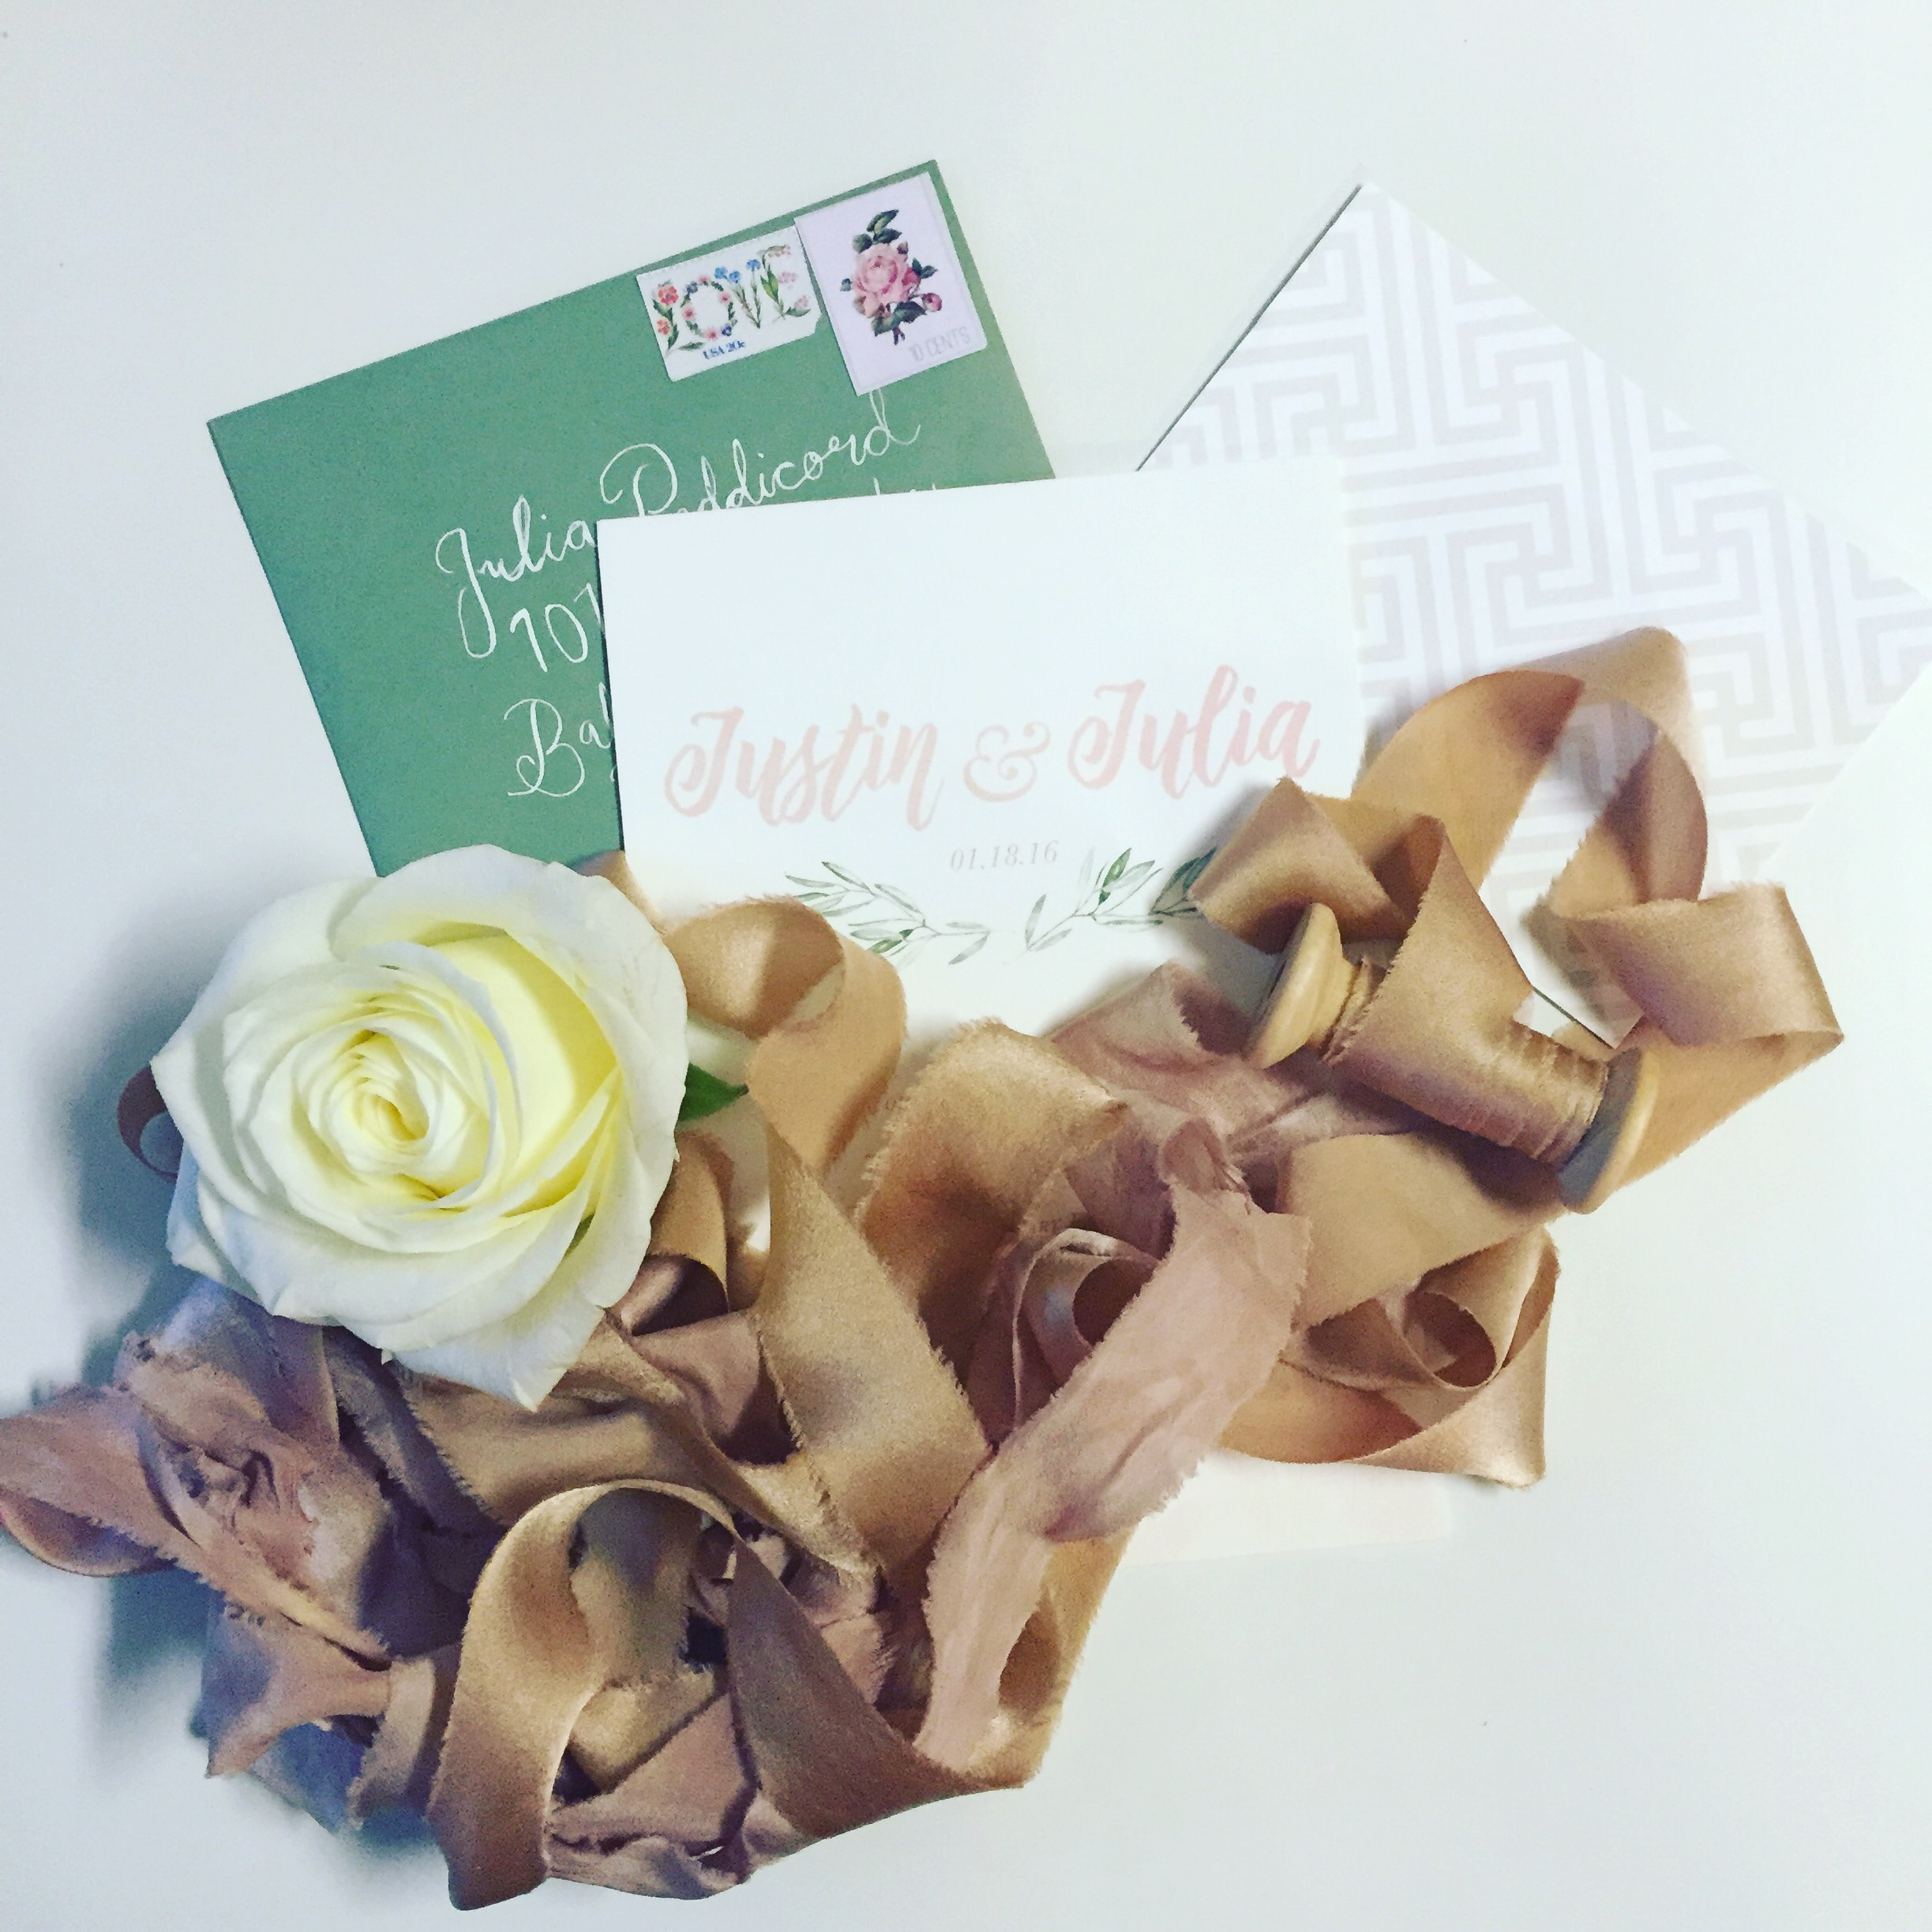 Invitation suite from our recent styled shoot by Ribbon and Ink and ribbon by Fleuropean!